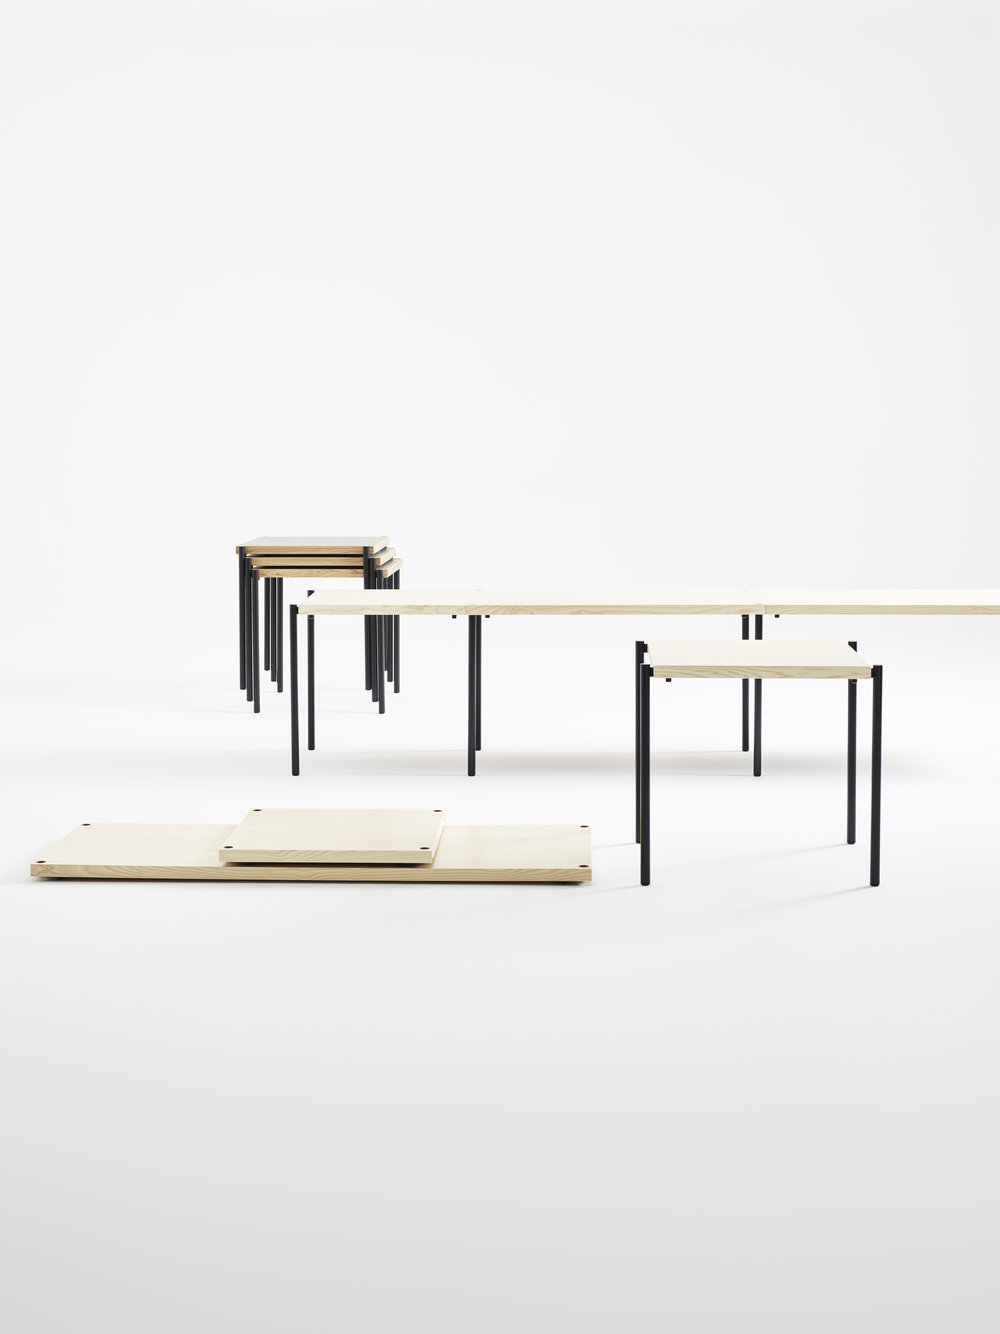 Kanecct table from Karl Andersson and Soner